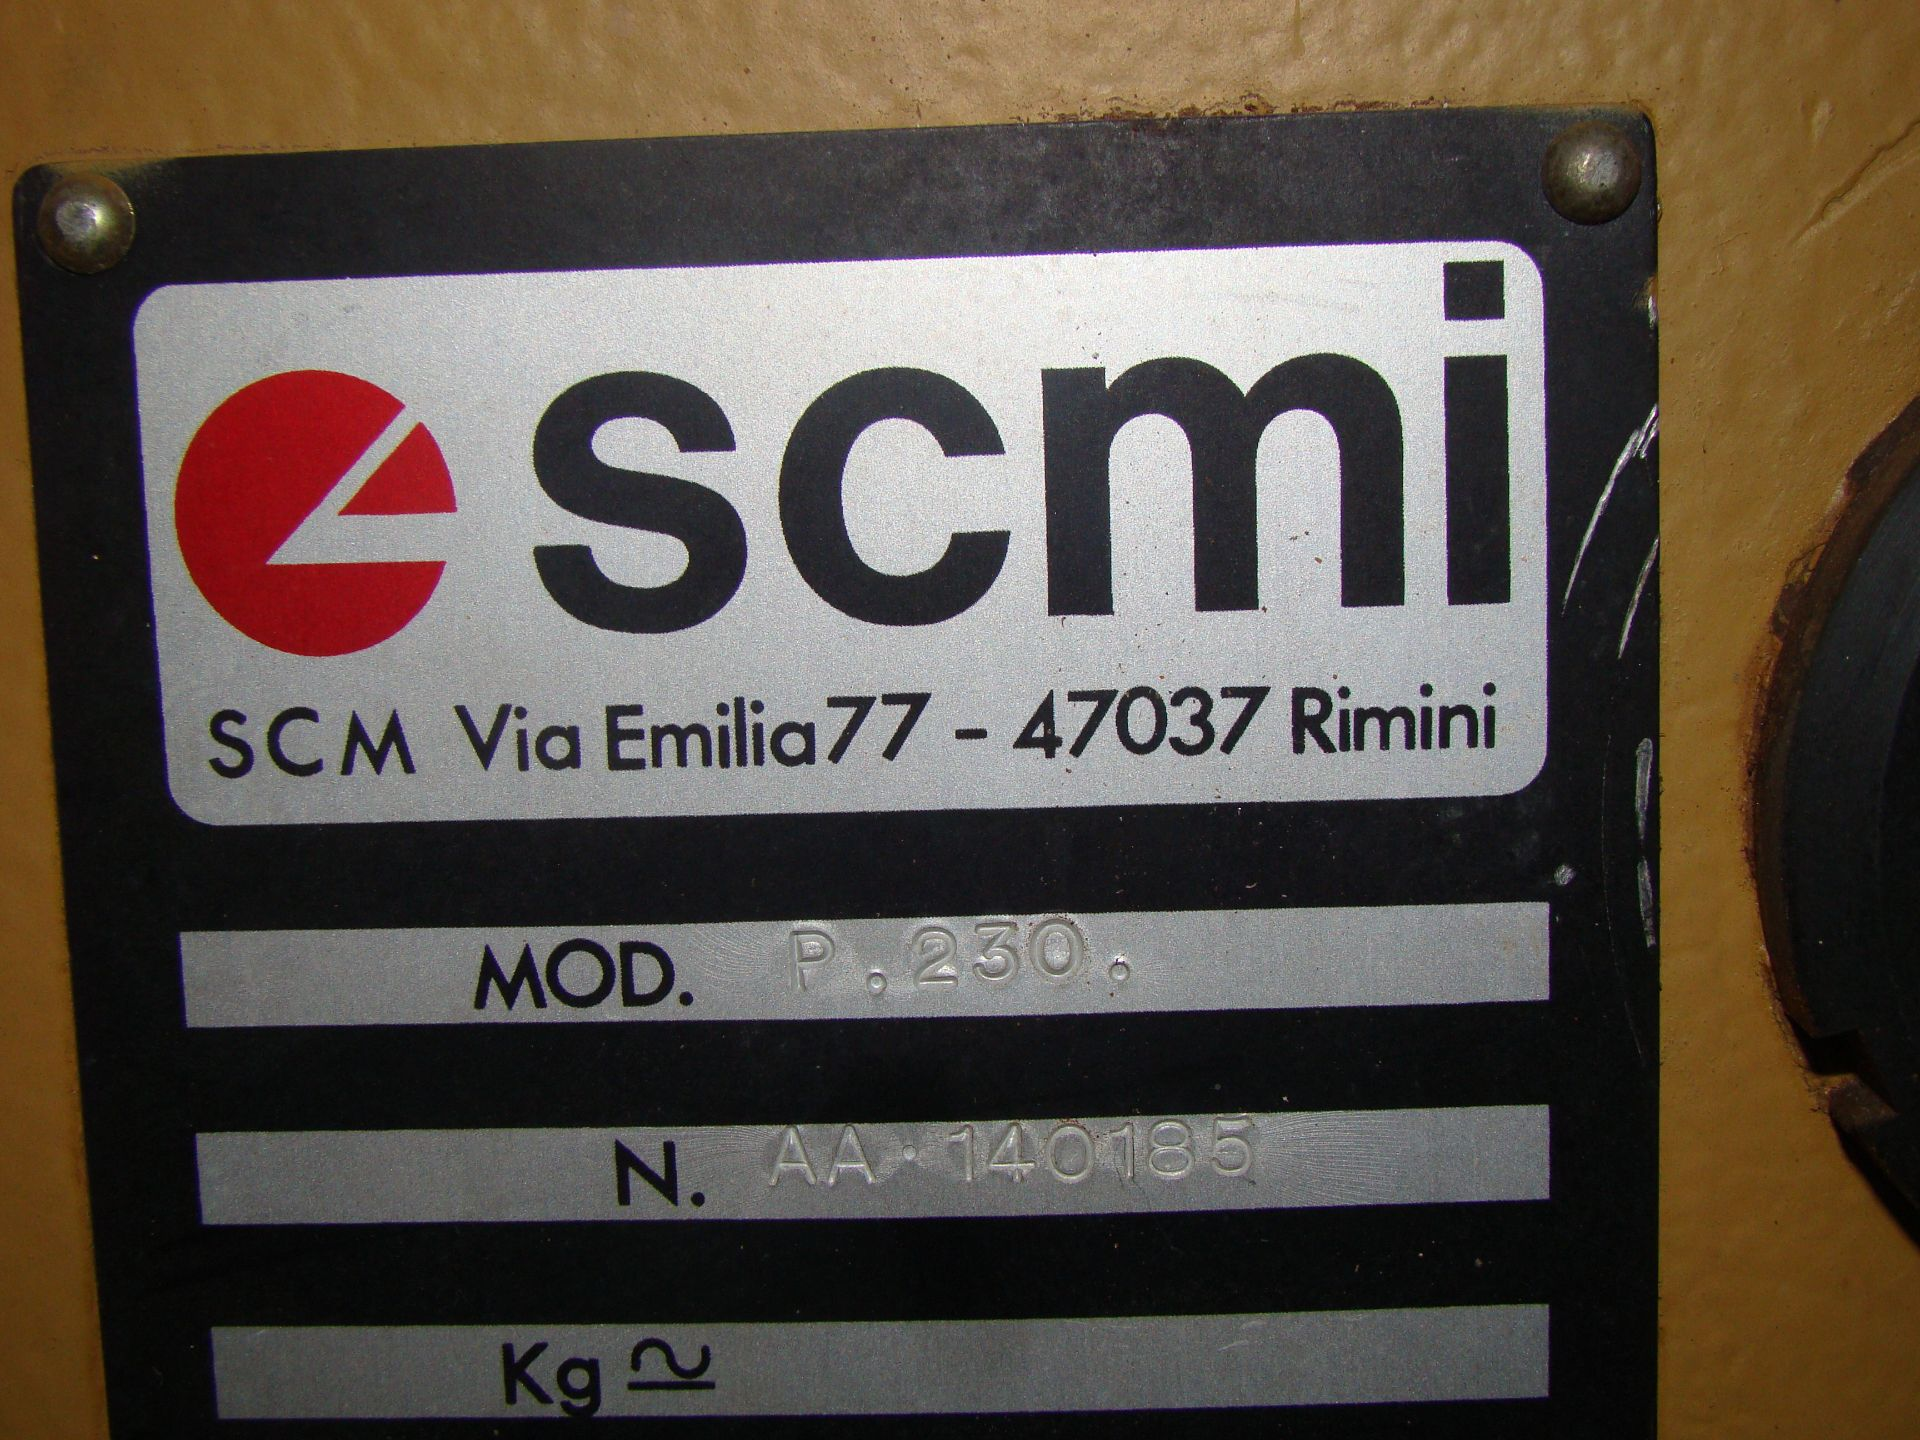 "SCMi 9"" Wood Moulder, Model: P230 5 Head 6.6HP 220/440 Volts 3Phase - Image 5 of 14"